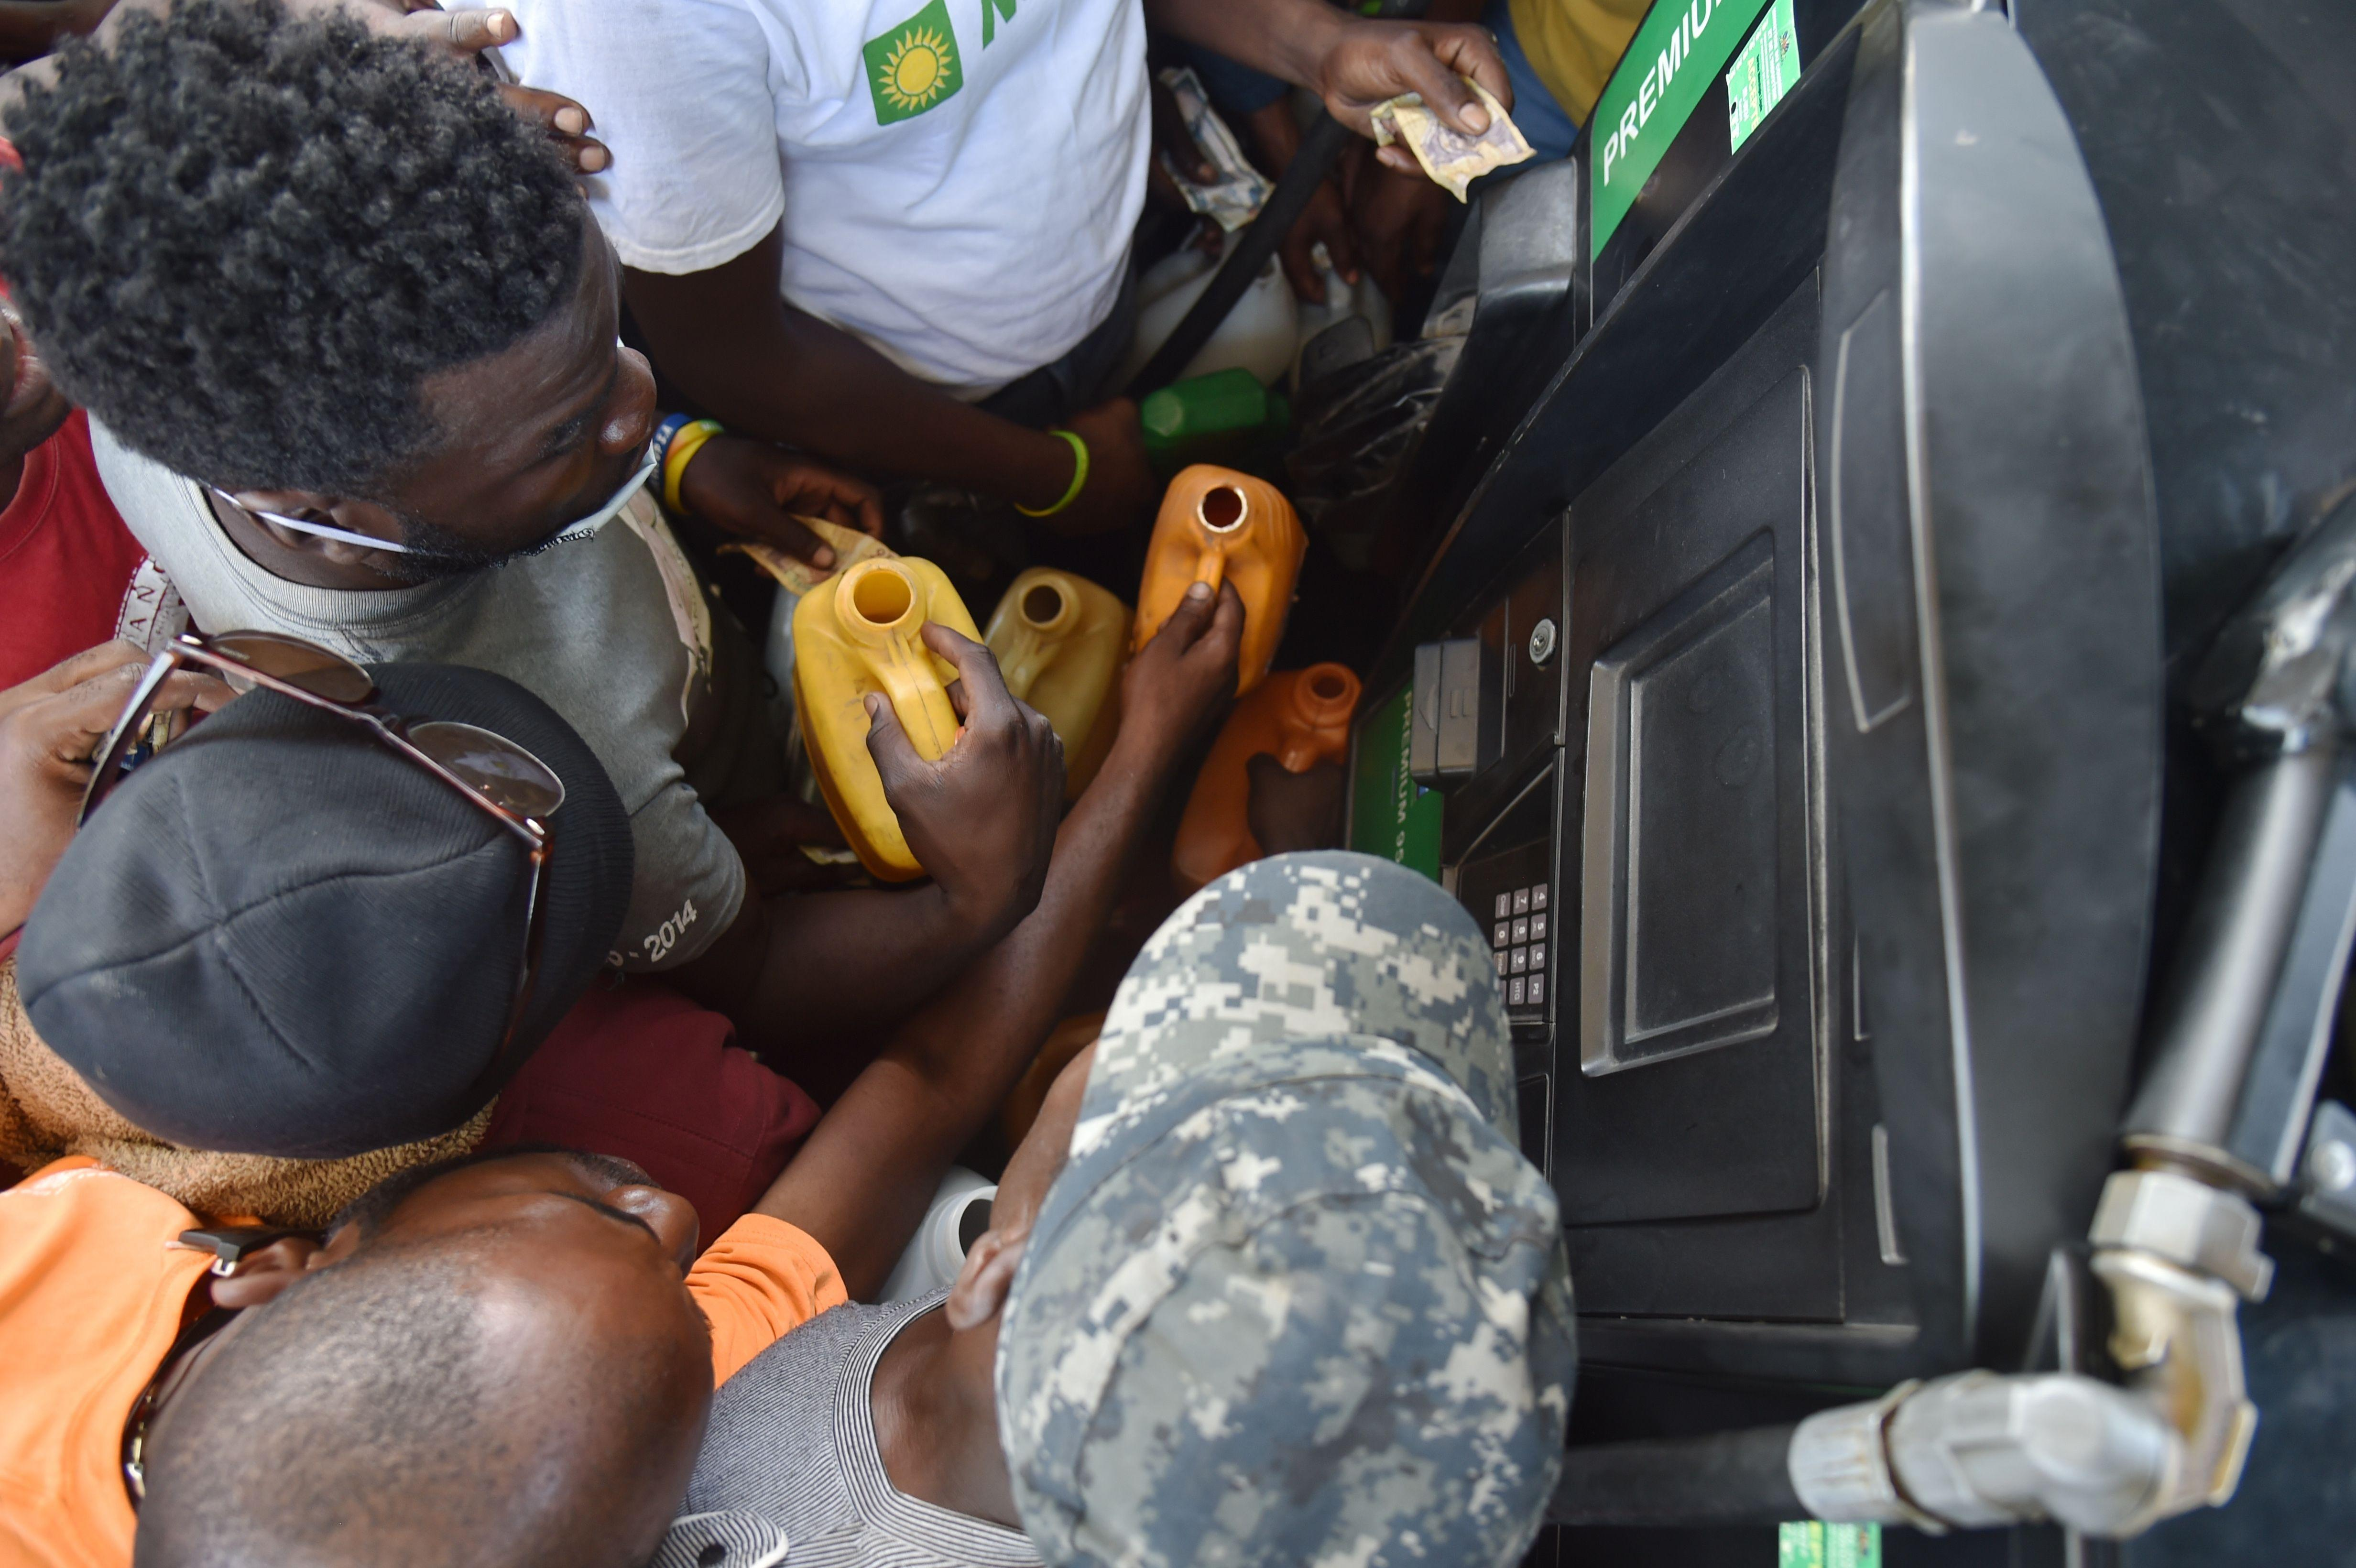 <p>Haitian people wait to purchase fuel at a gas station in the commune of Petion Ville in the Haitian capital Port-au-Prince, July 9, 2018, one of the few gas stations open during the strike to protest the hike in fuel prices. (Photo: Hector Retamal/AFP/Getty Images) </p>